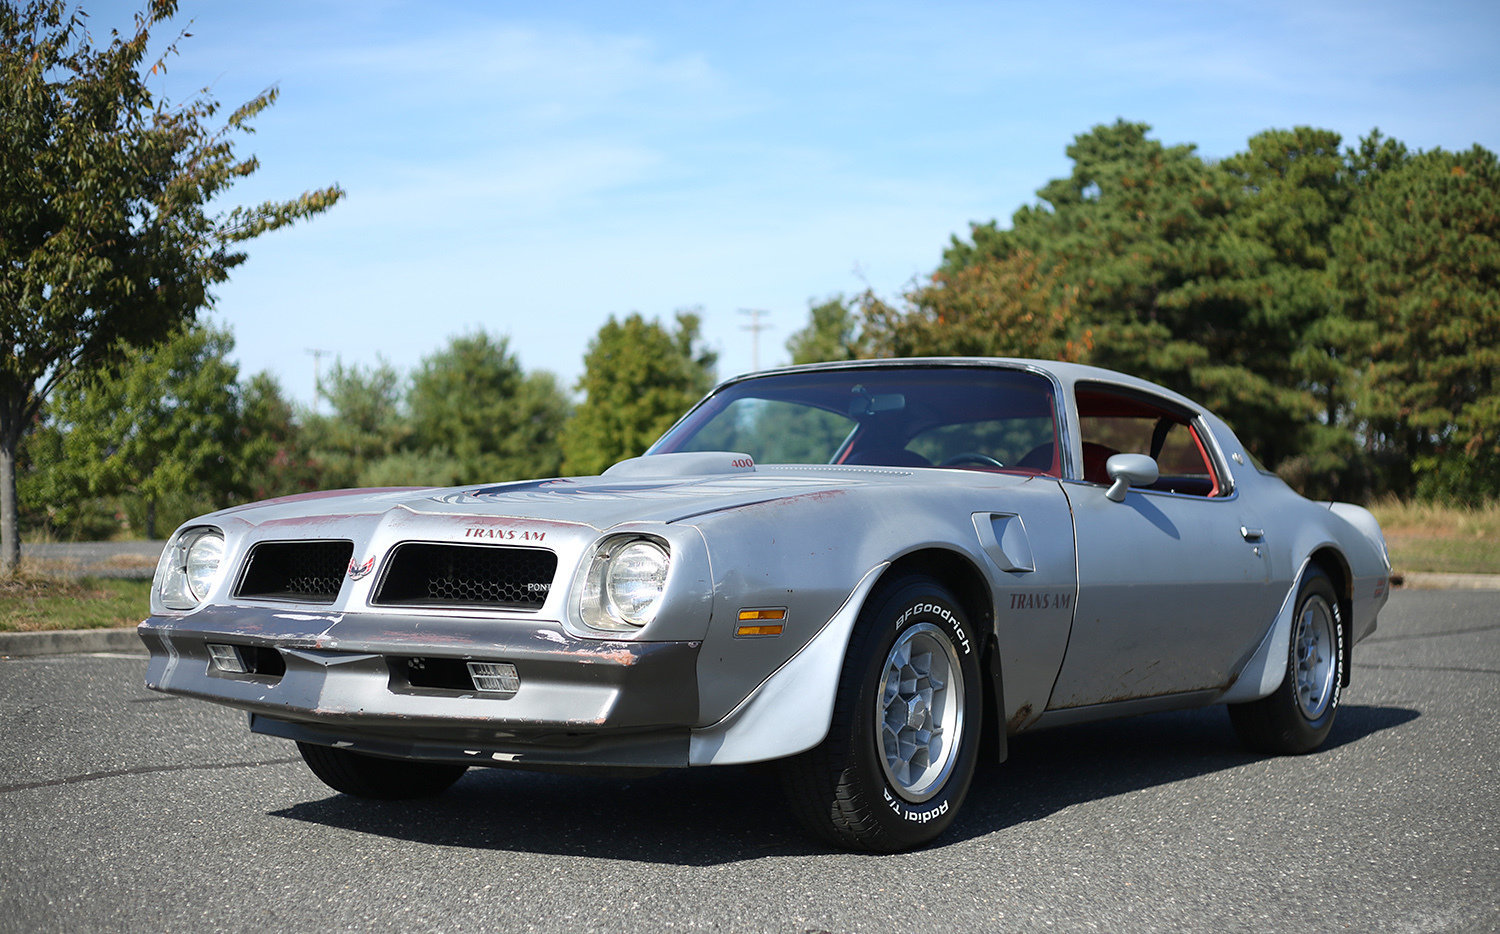 1976 pontiac trans am for sale 68780 mcg. Black Bedroom Furniture Sets. Home Design Ideas